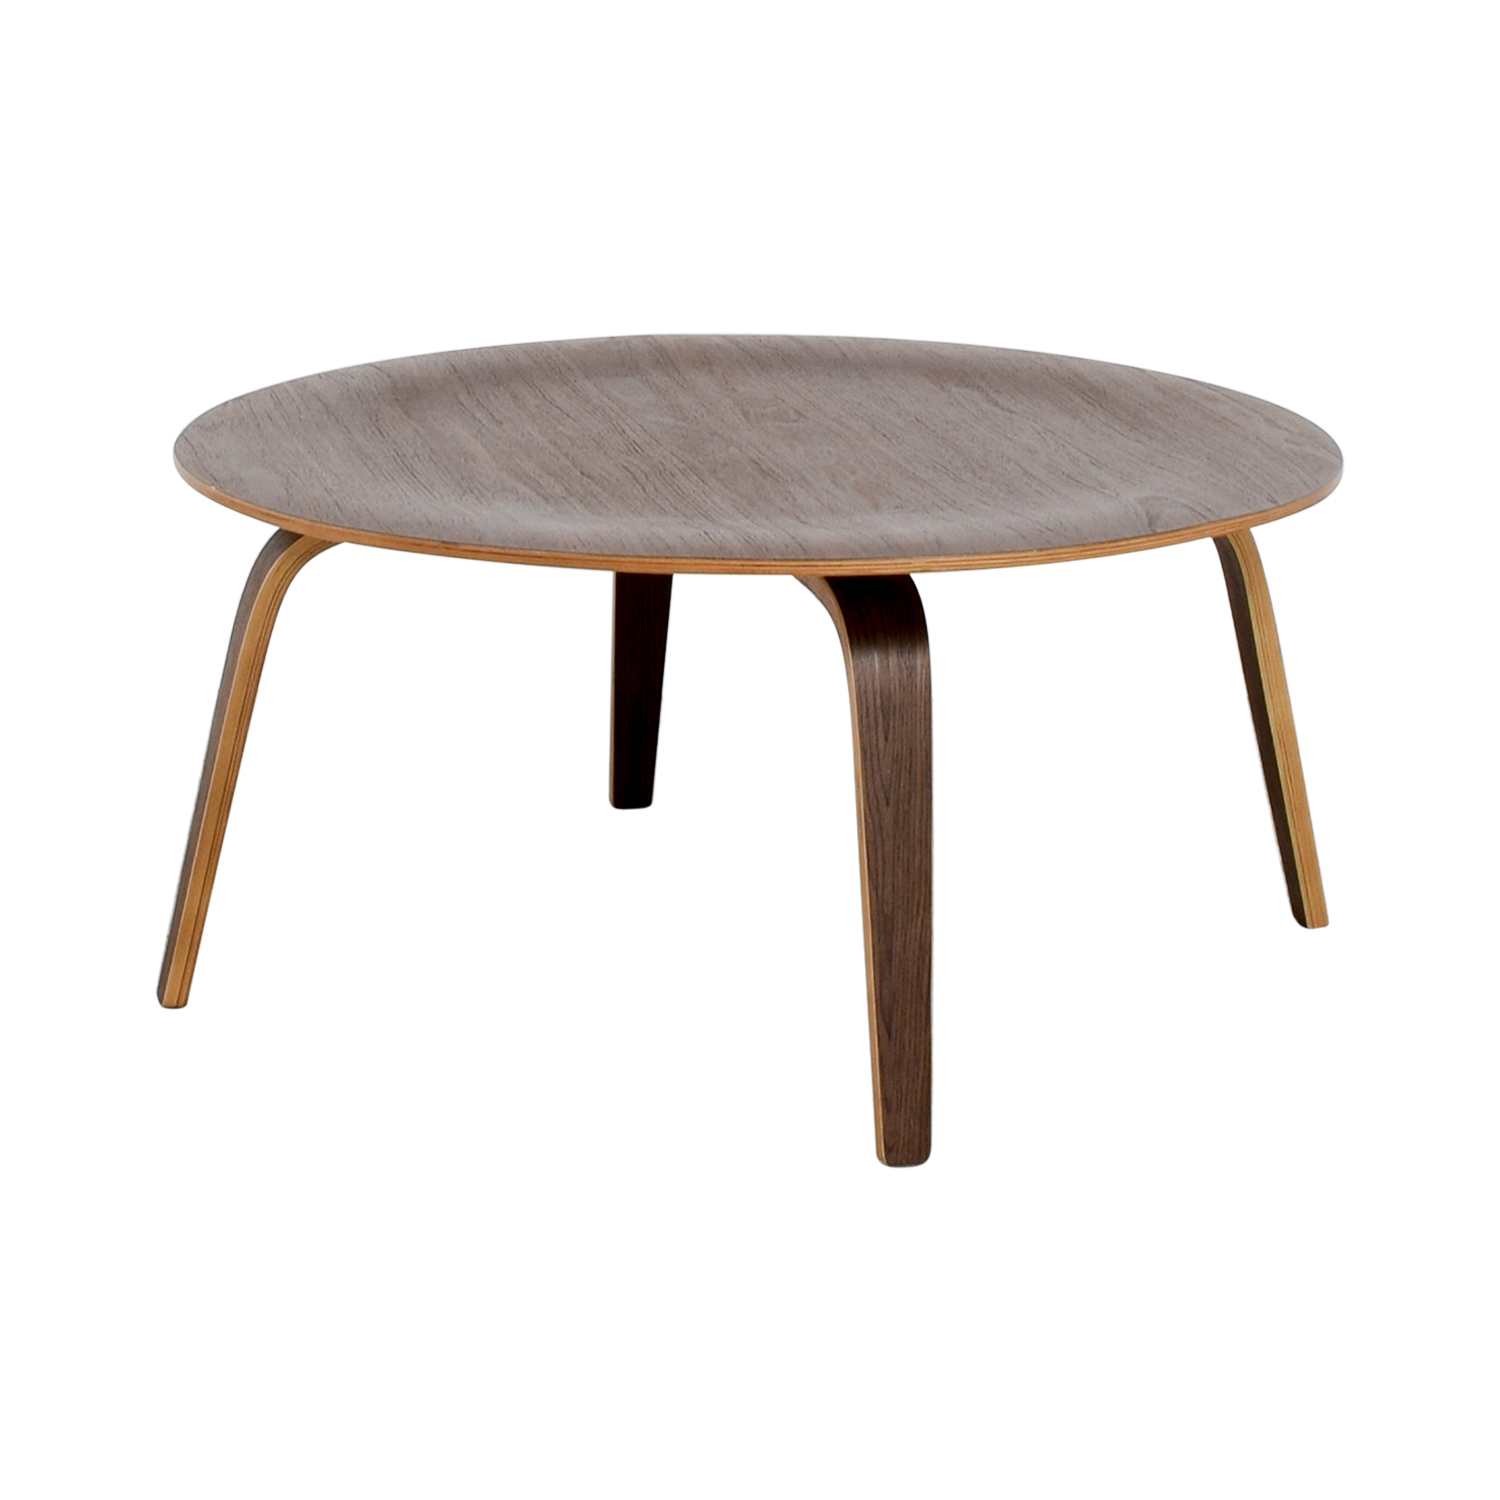 Modway Modway Round Coffee Table